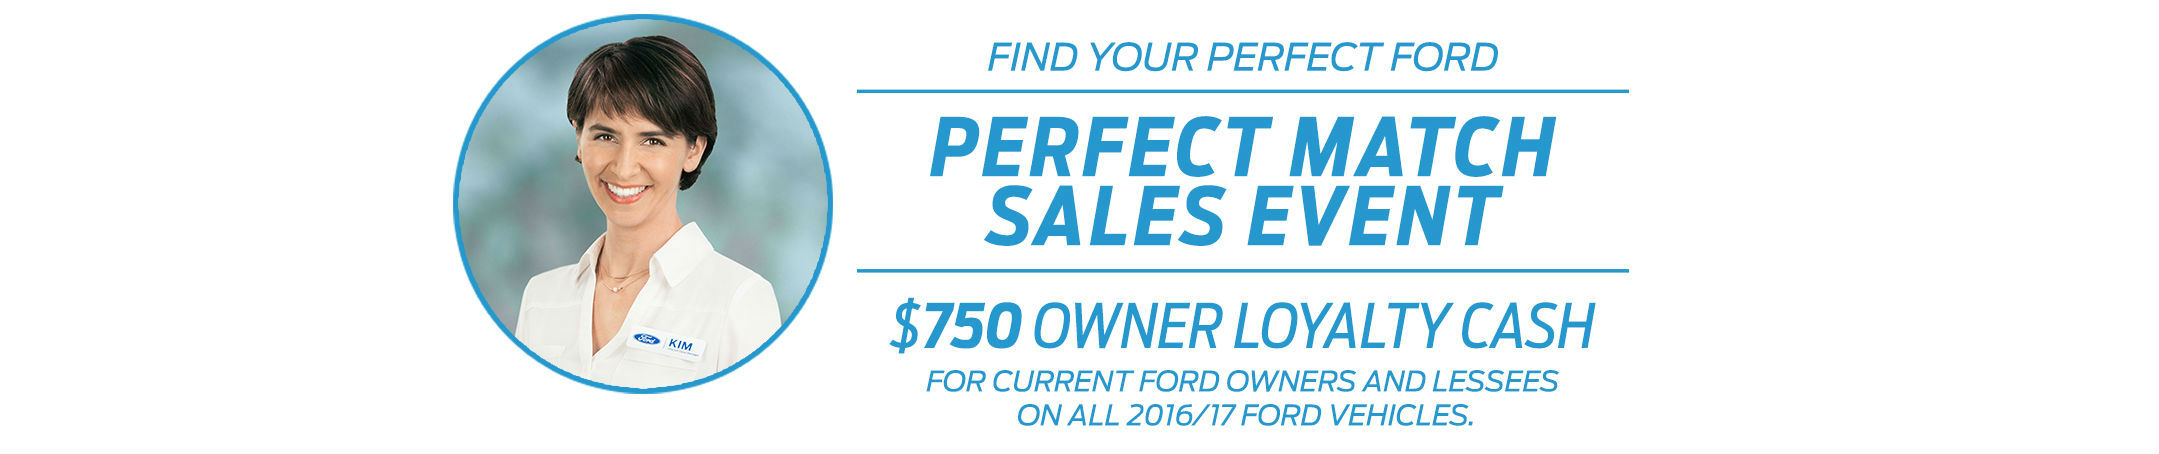 Ford Perfect Match Sale